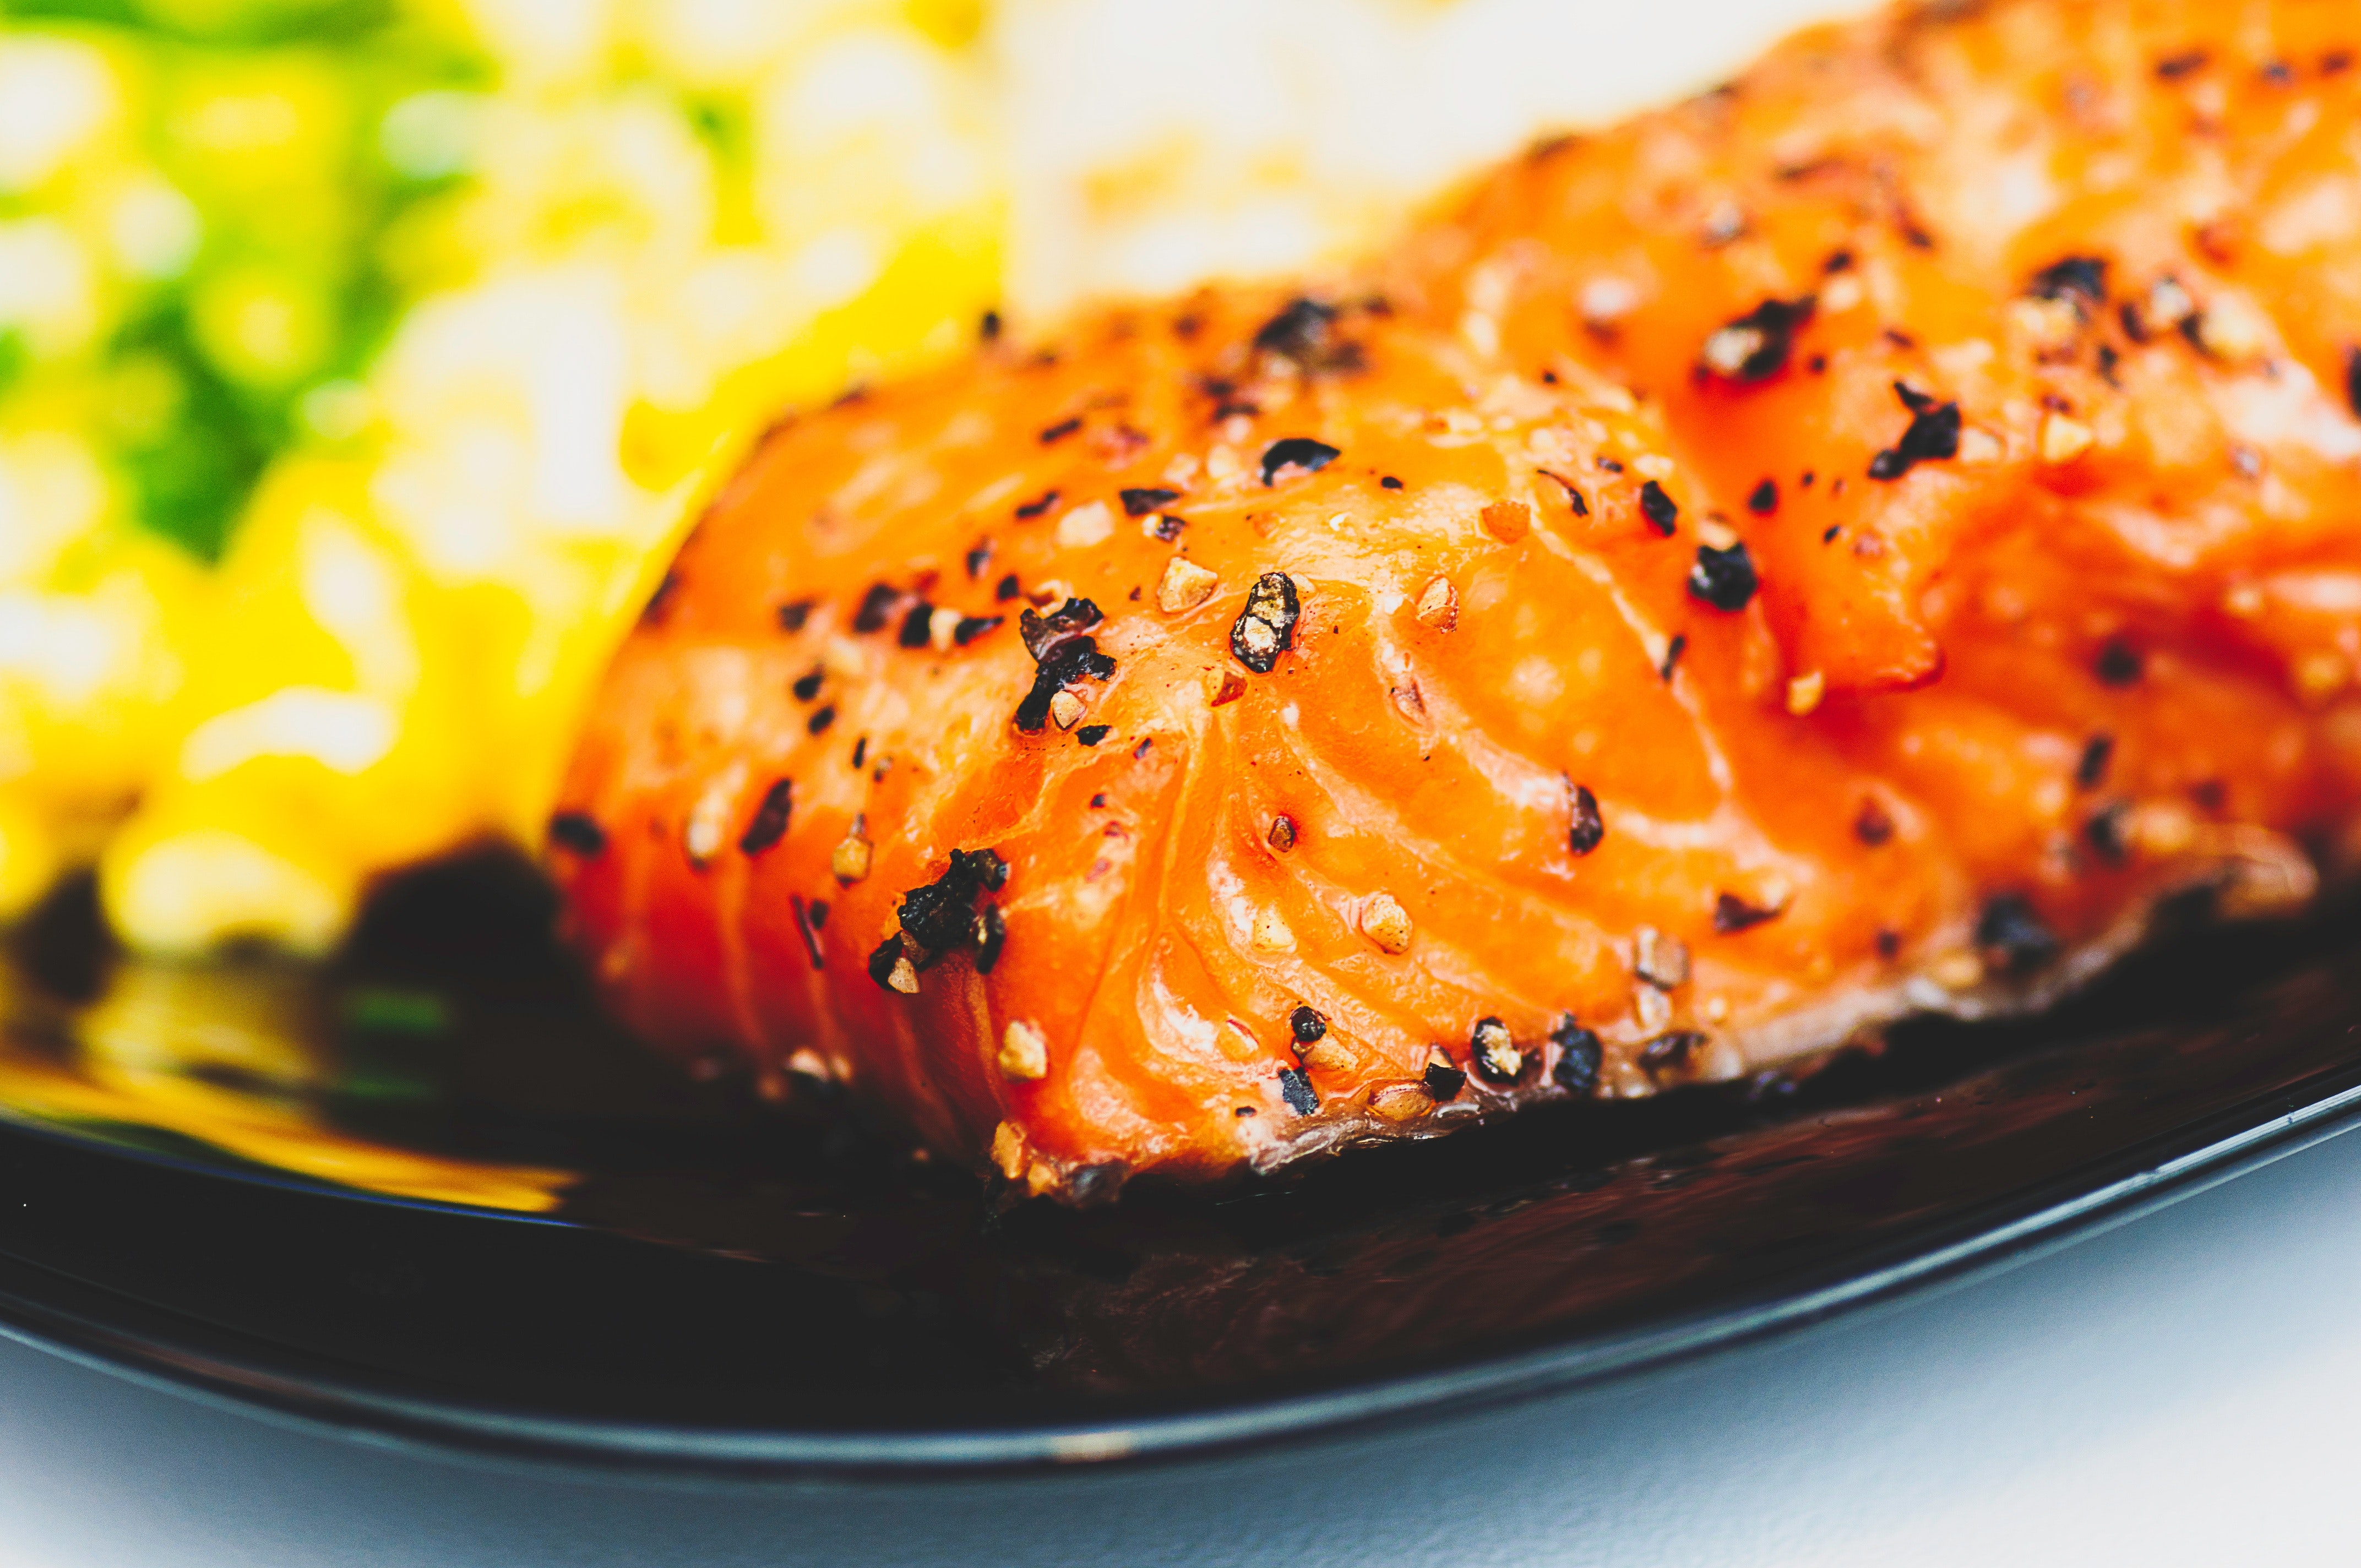 A plate of seared salmon with peppercorn flakes